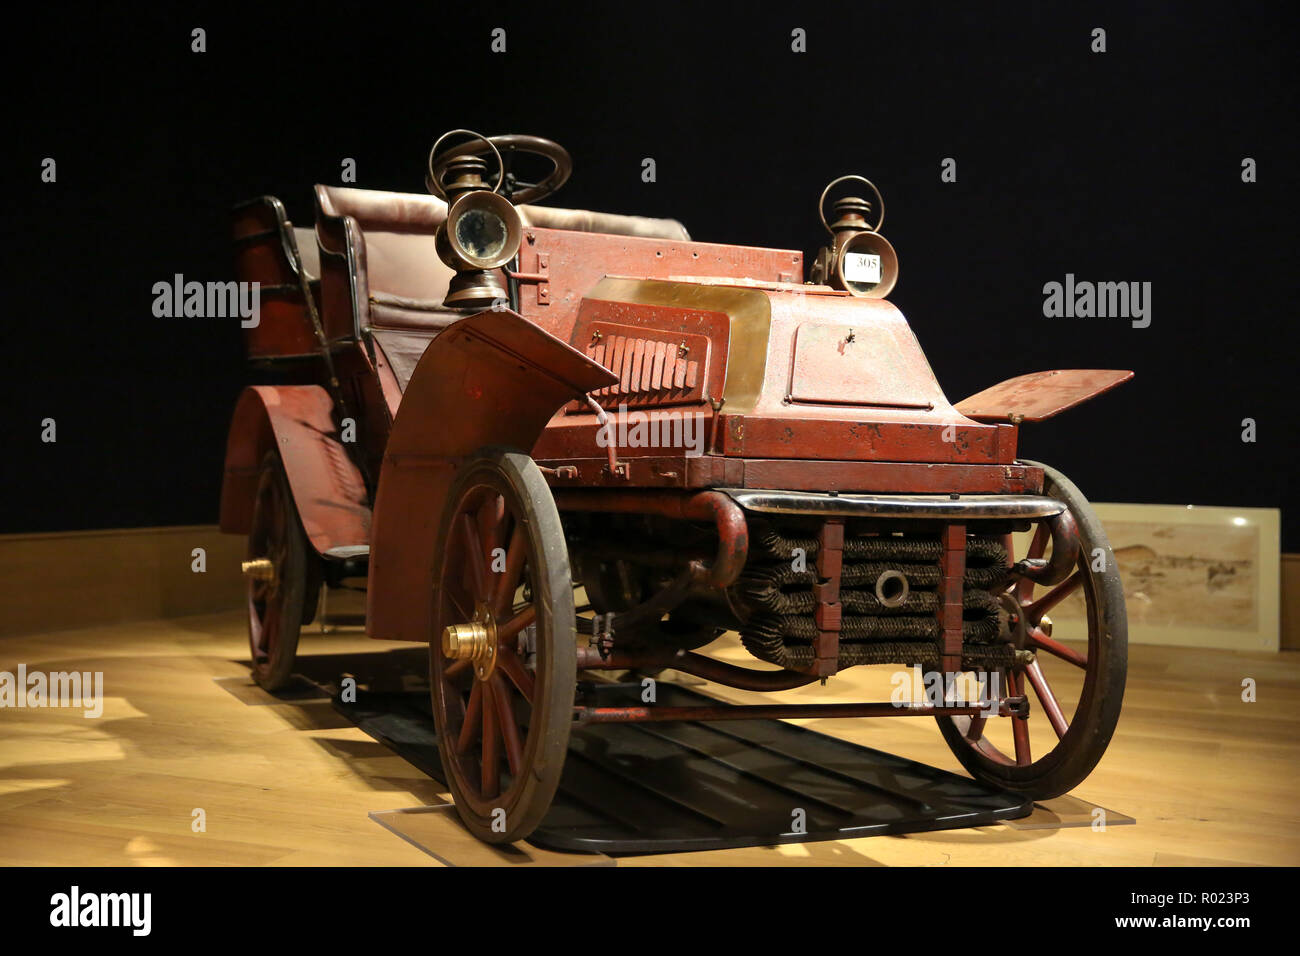 Bonhams, London, UK 1 Nov 2018 - 1904 Cadillac Model A 6½HP rear-entrance Tonneau (est £ 65,000 - 75,000). Veteran motor cars on display at Bonhams before setting off to take part in the oldest motoring event in the world, The London to Brighton Run on Sunday 4 November.  Credit: Dinendra Haria/Alamy Live News - Stock Image